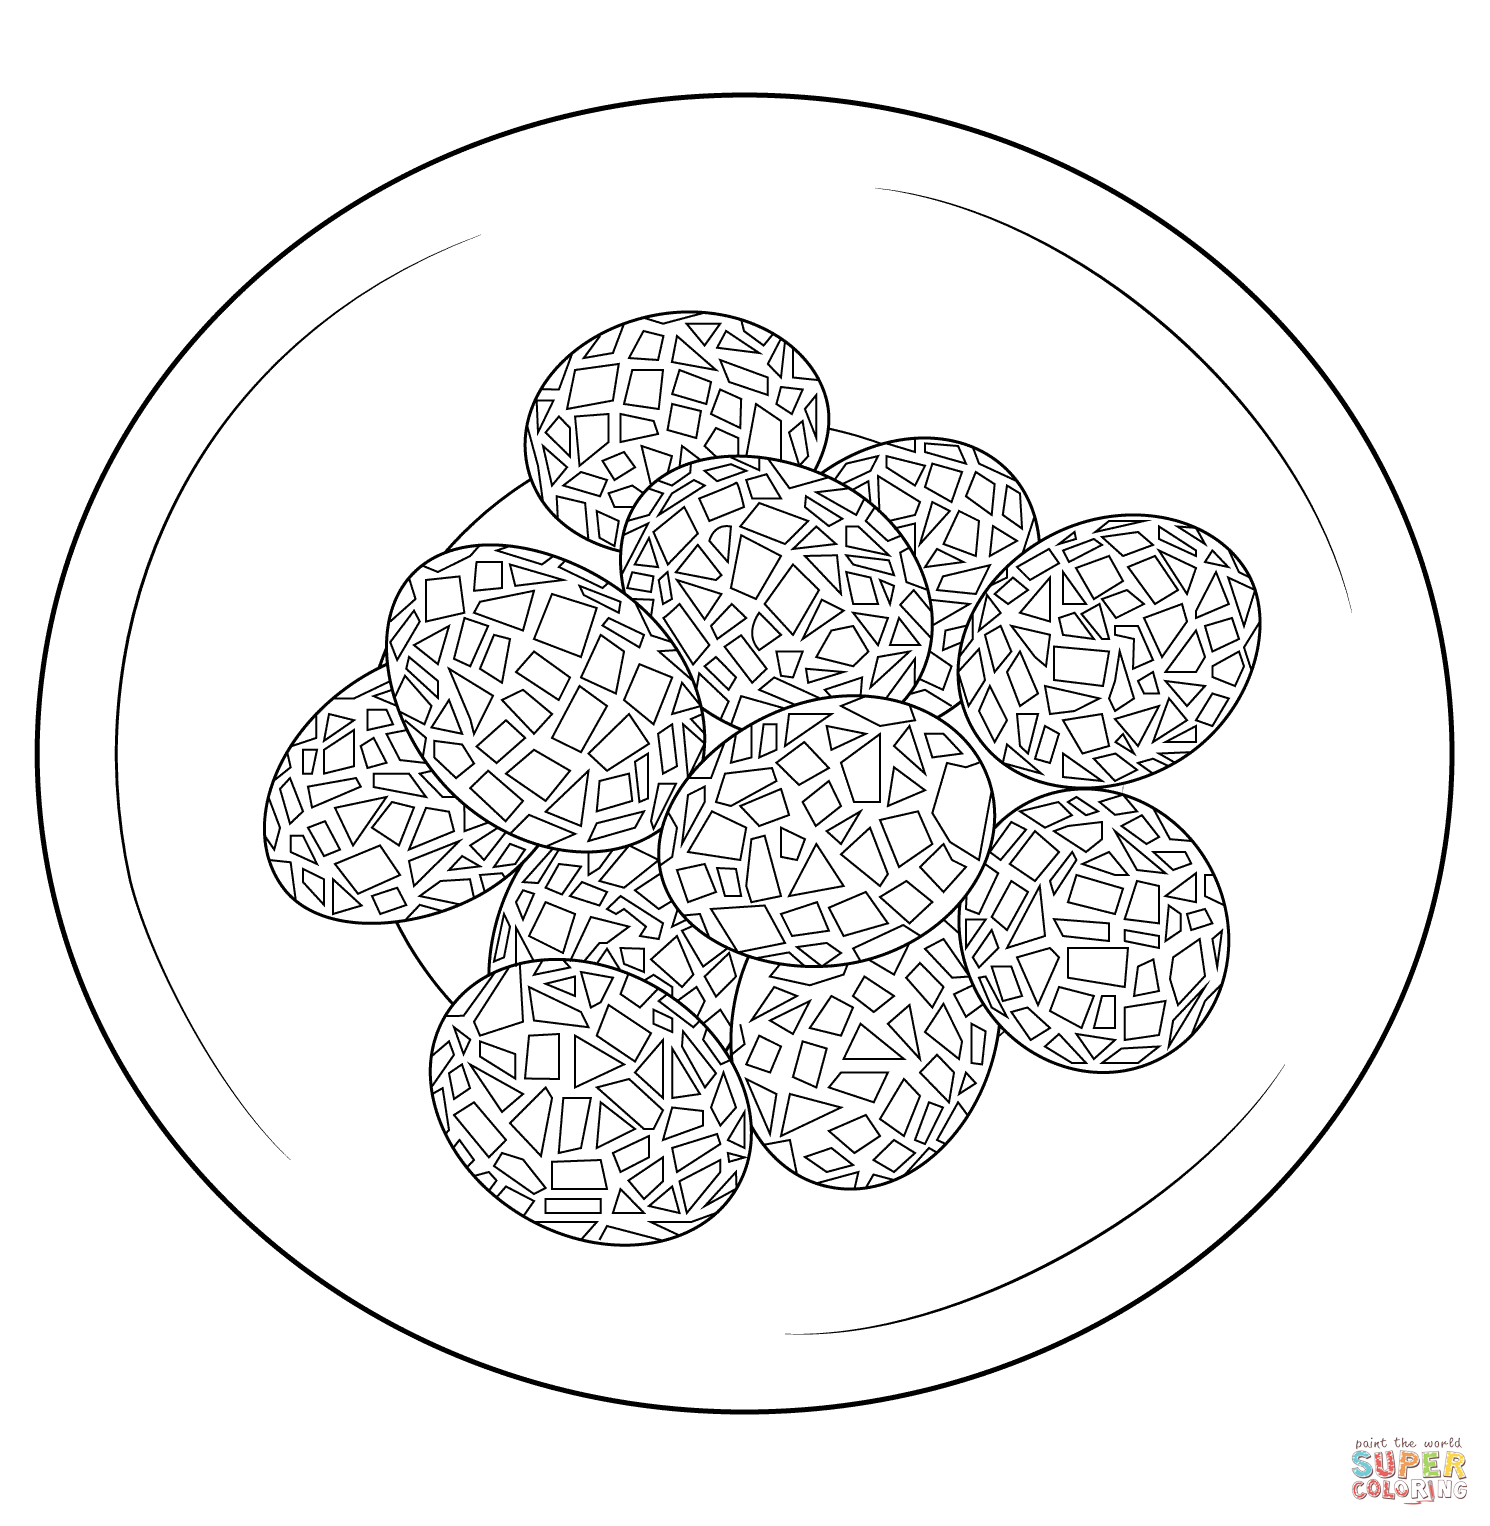 free mosaic patterns to color free printable adult mosaic coloring pages mosaic to color mosaic free patterns